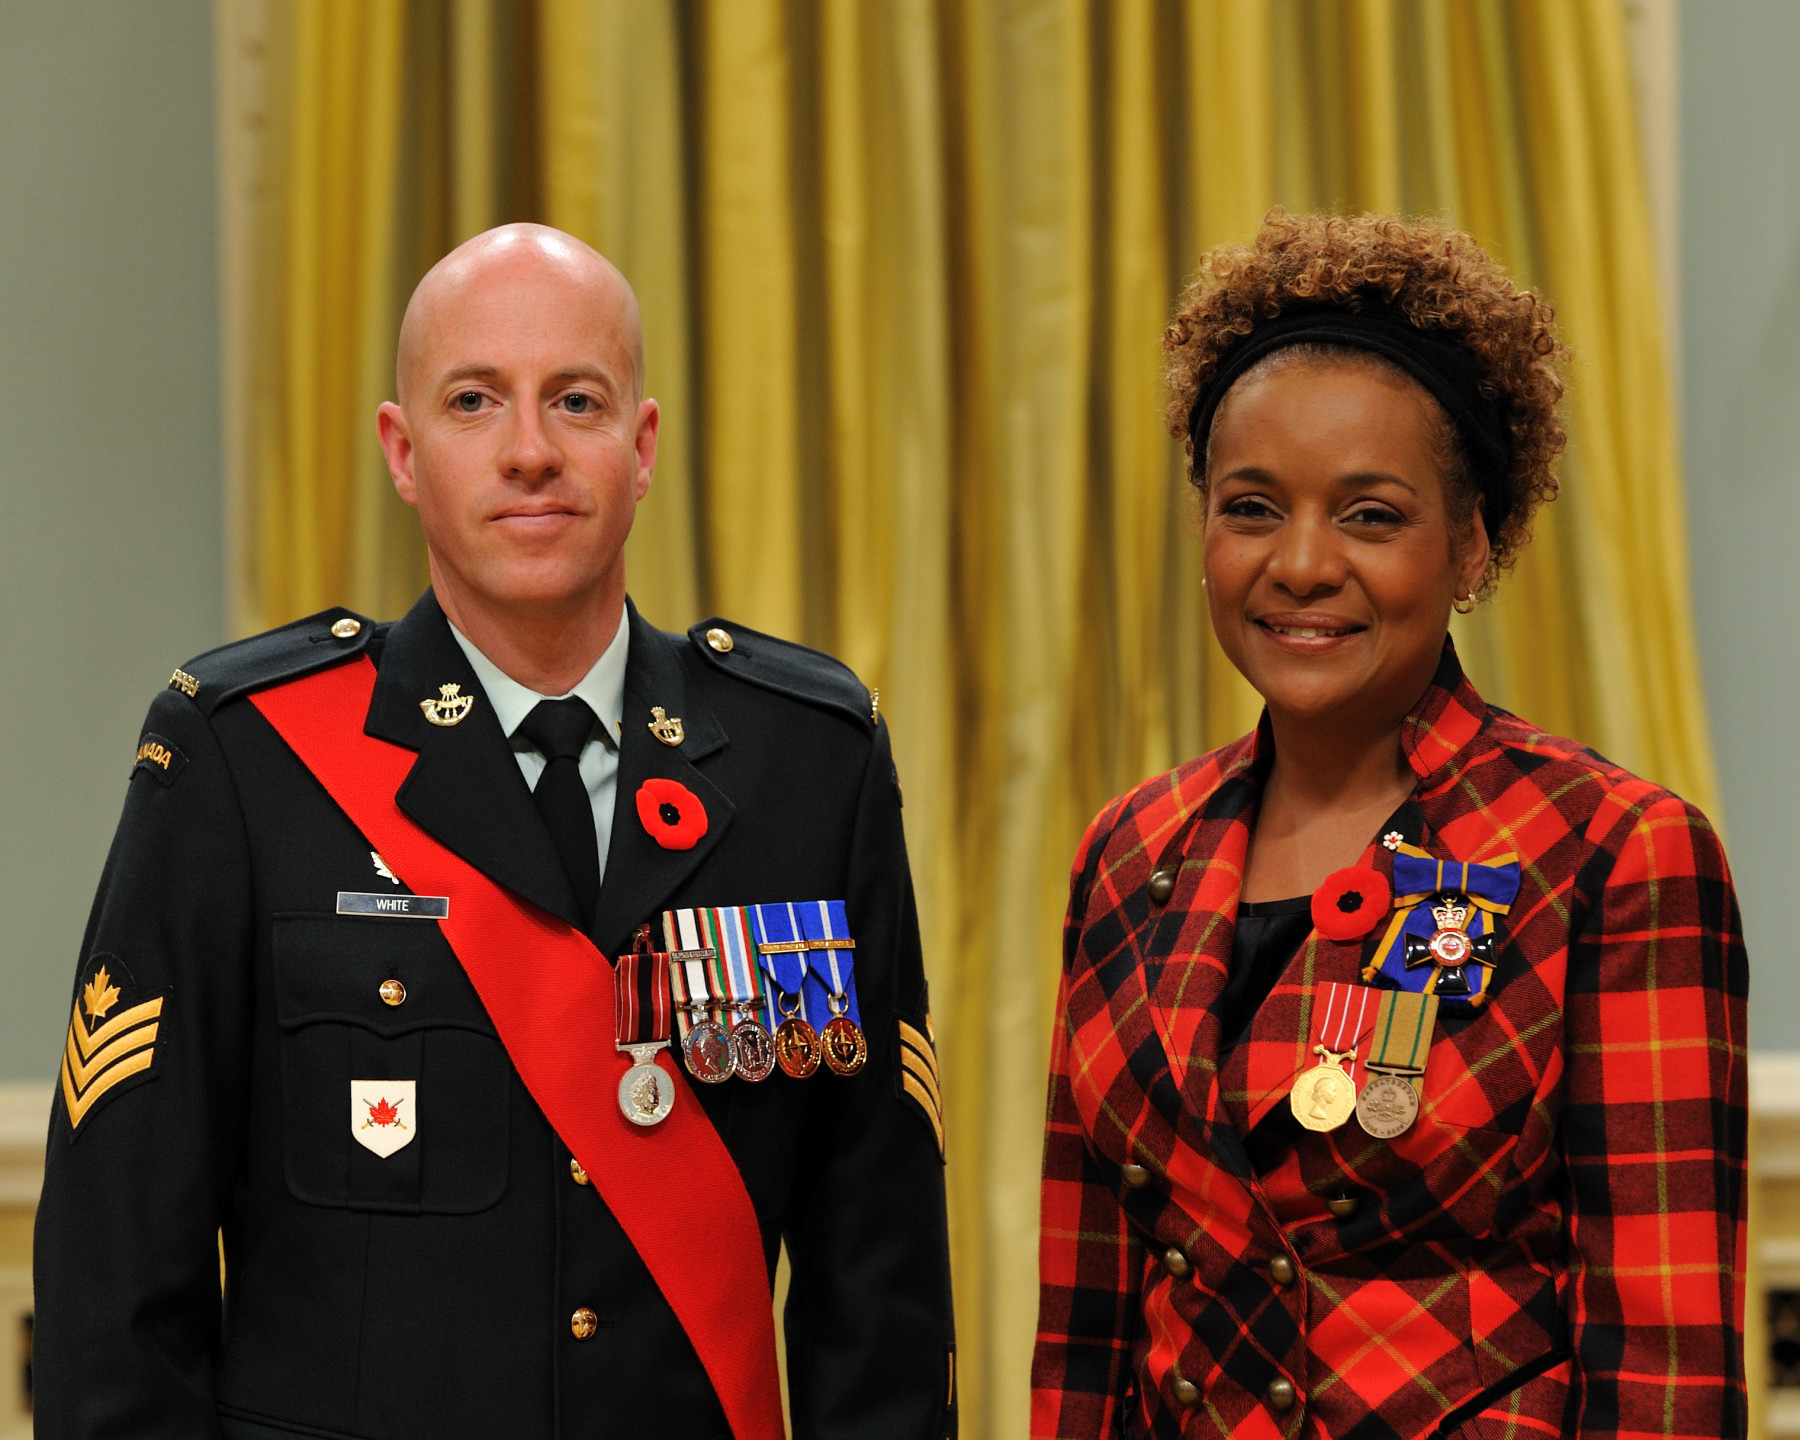 Her Excellency the Right Honourable Michaëlle Jean, Commander-in-Chief of Canada, presented the Sacrifice Medal to Sergeant Gregory Owen White.